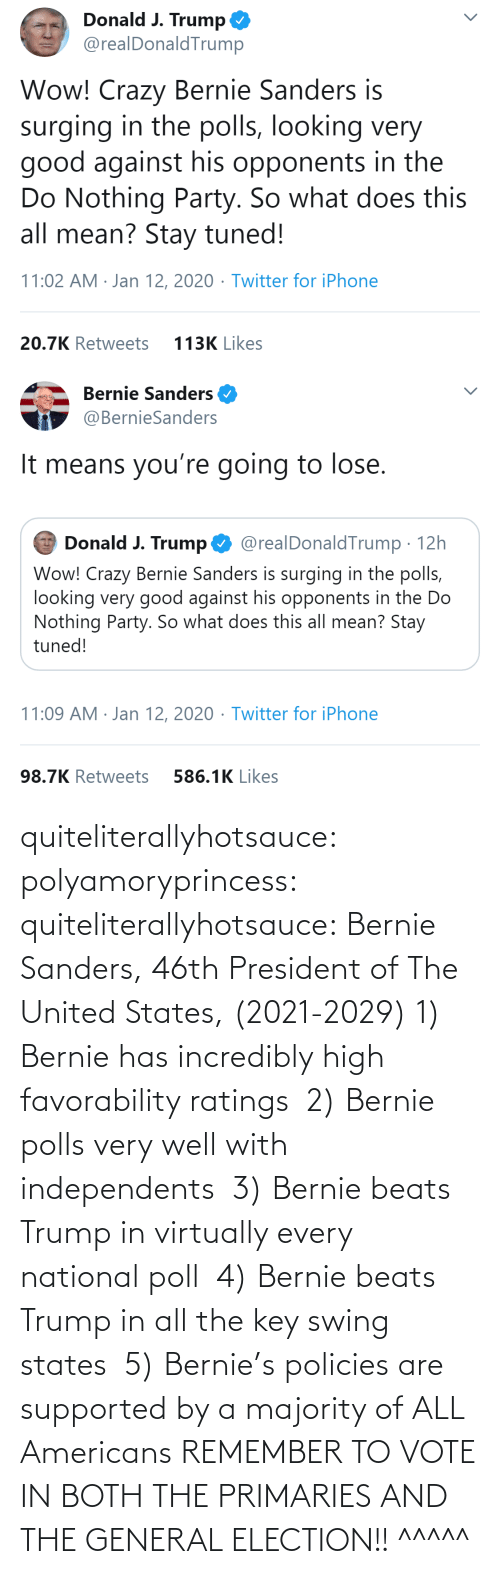 Bernie: quiteliterallyhotsauce:  polyamoryprincess:  quiteliterallyhotsauce:   Bernie Sanders, 46th President of The United States, (2021-2029)    1) Bernie has incredibly high favorability ratings  2) Bernie polls very well with independents  3) Bernie beats Trump in virtually every national poll  4) Bernie beats Trump in all the key swing states  5) Bernie's policies are supported by a majority of ALL Americans    REMEMBER TO VOTE IN BOTH THE PRIMARIES AND THE GENERAL ELECTION!!  ^^^^^